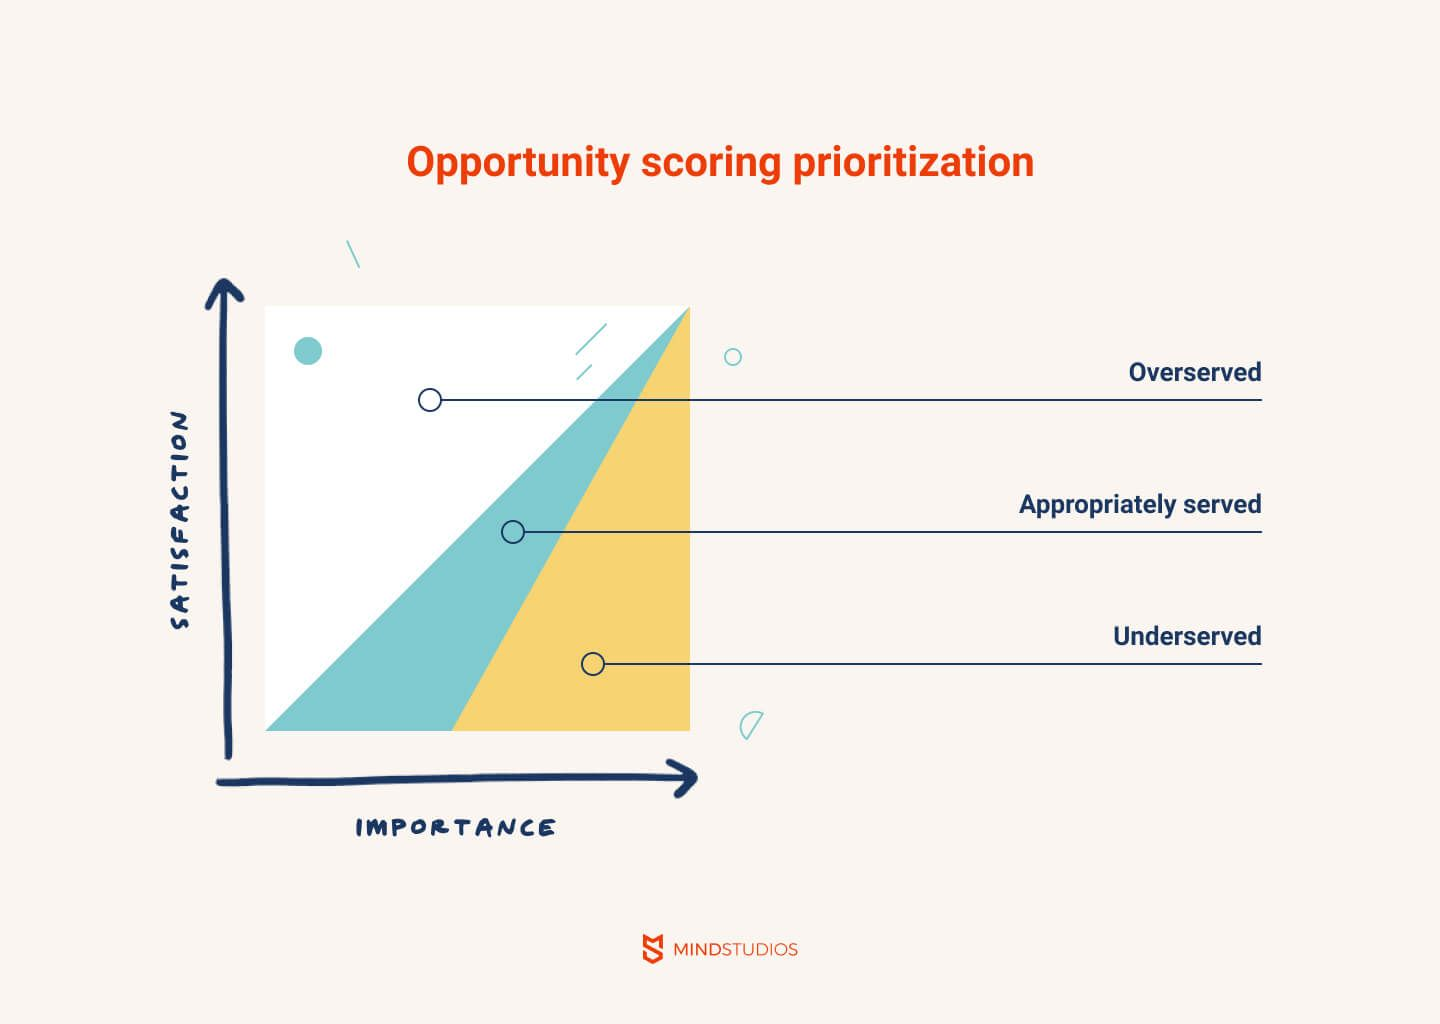 Opportunity scoring mvp prioritization